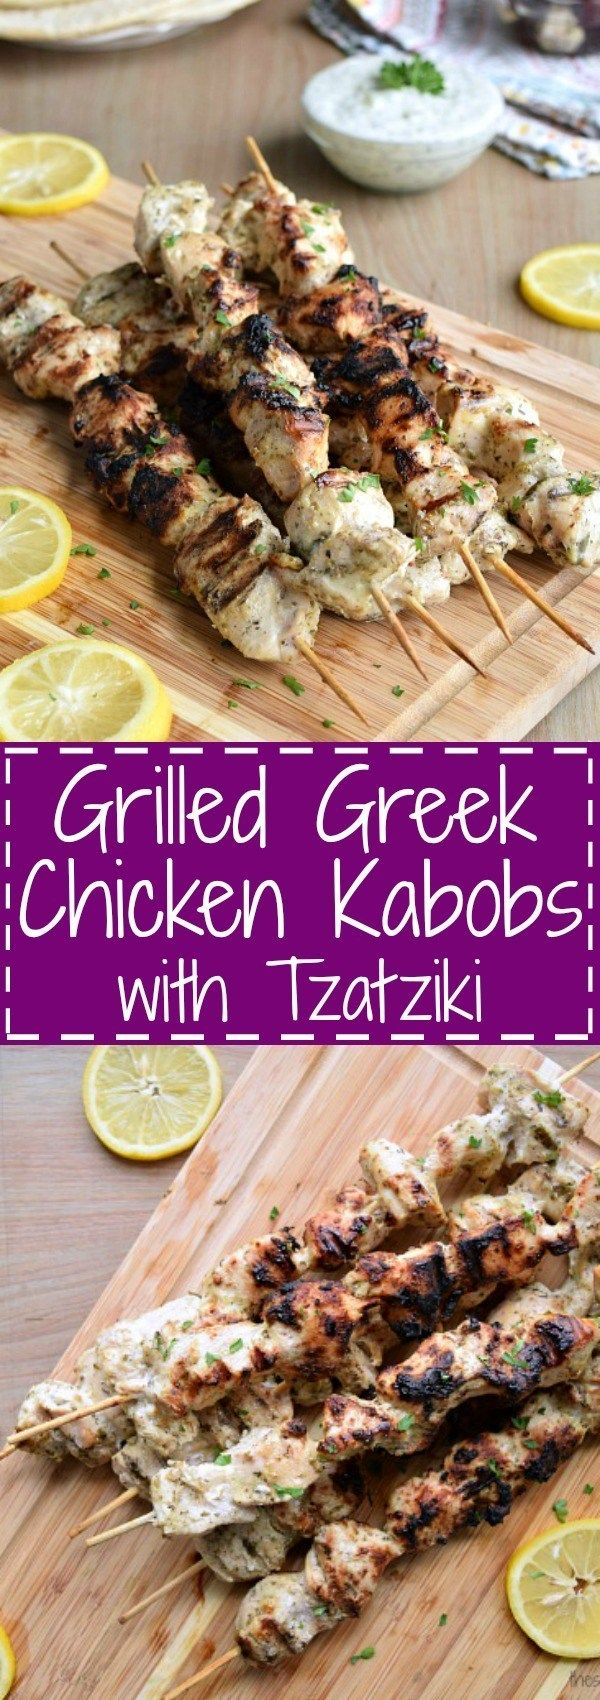 Grilled Greek Chicken Kabobs with Tzatziki | The Schmidty Wife #chickenkabobmarinade